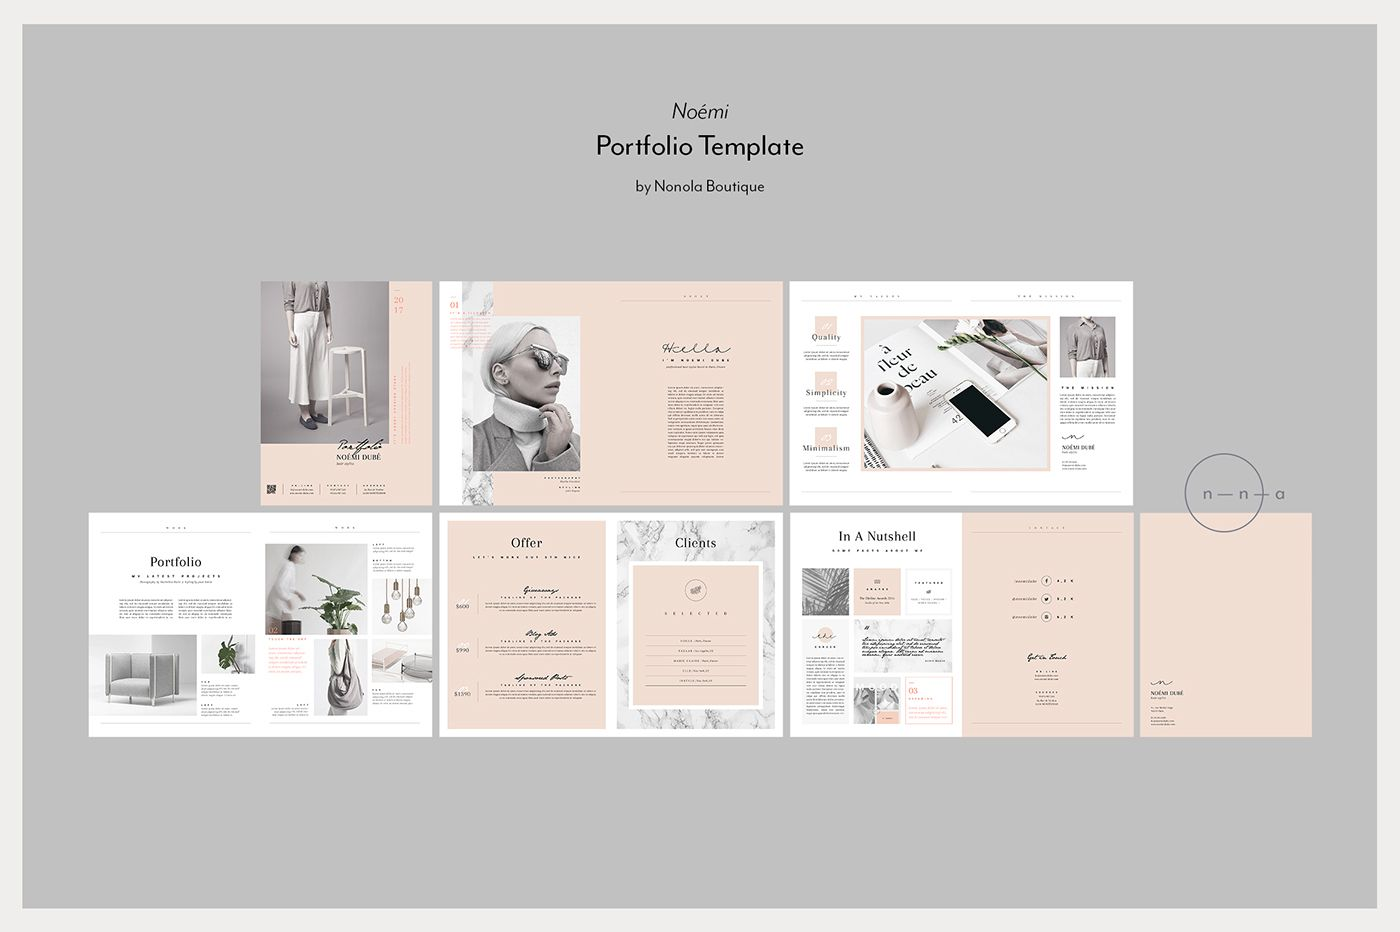 noÉmi portfolio template on behance デザイン pinterest